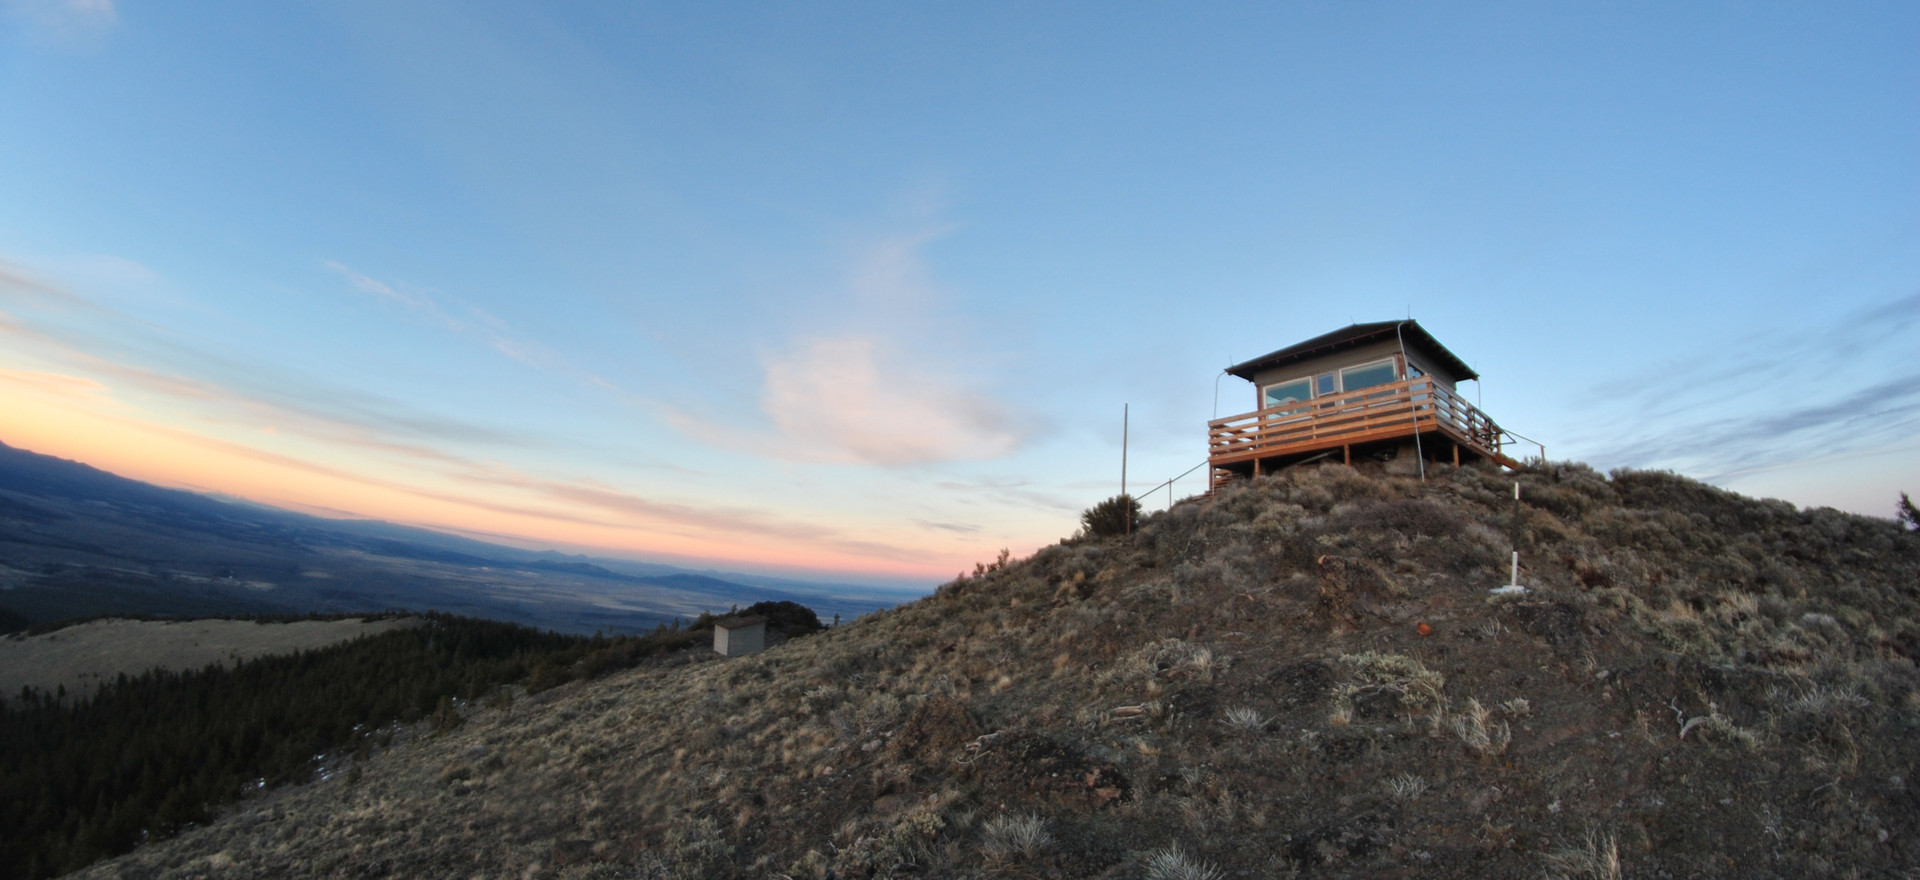 Hager Mountain Lookout Tower